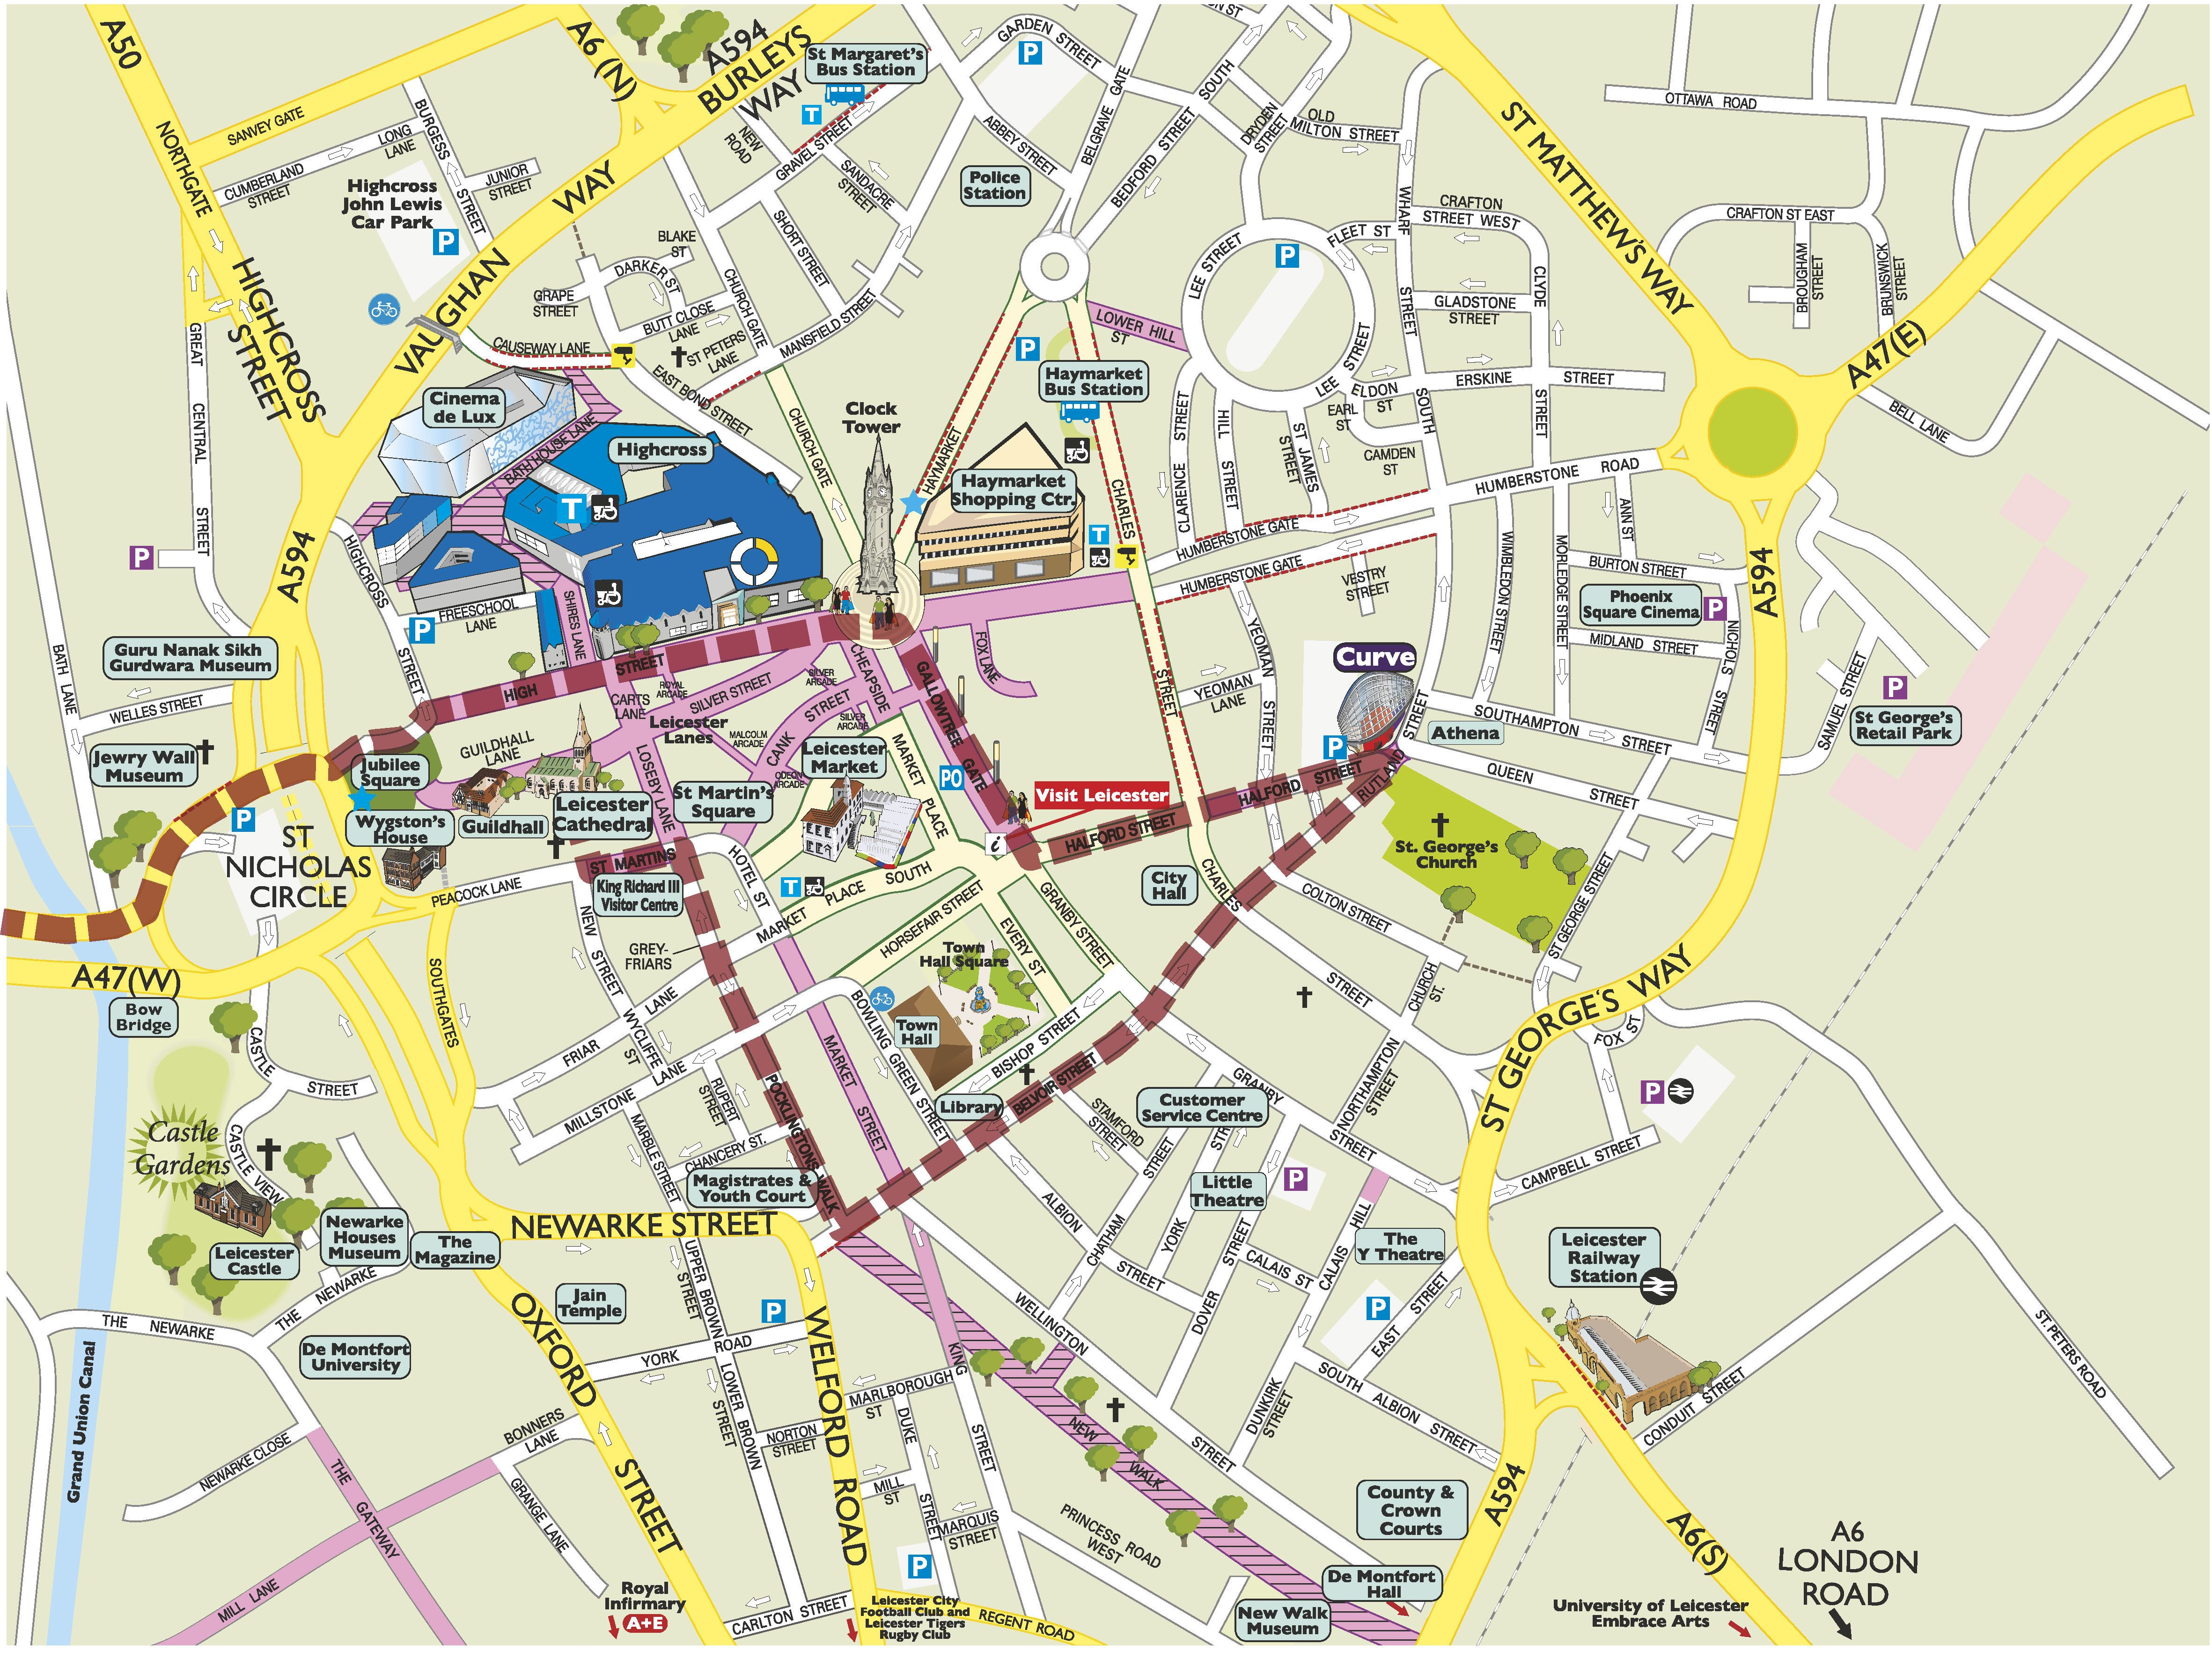 Kings cortege procession route announced PREPARATIONS are underway